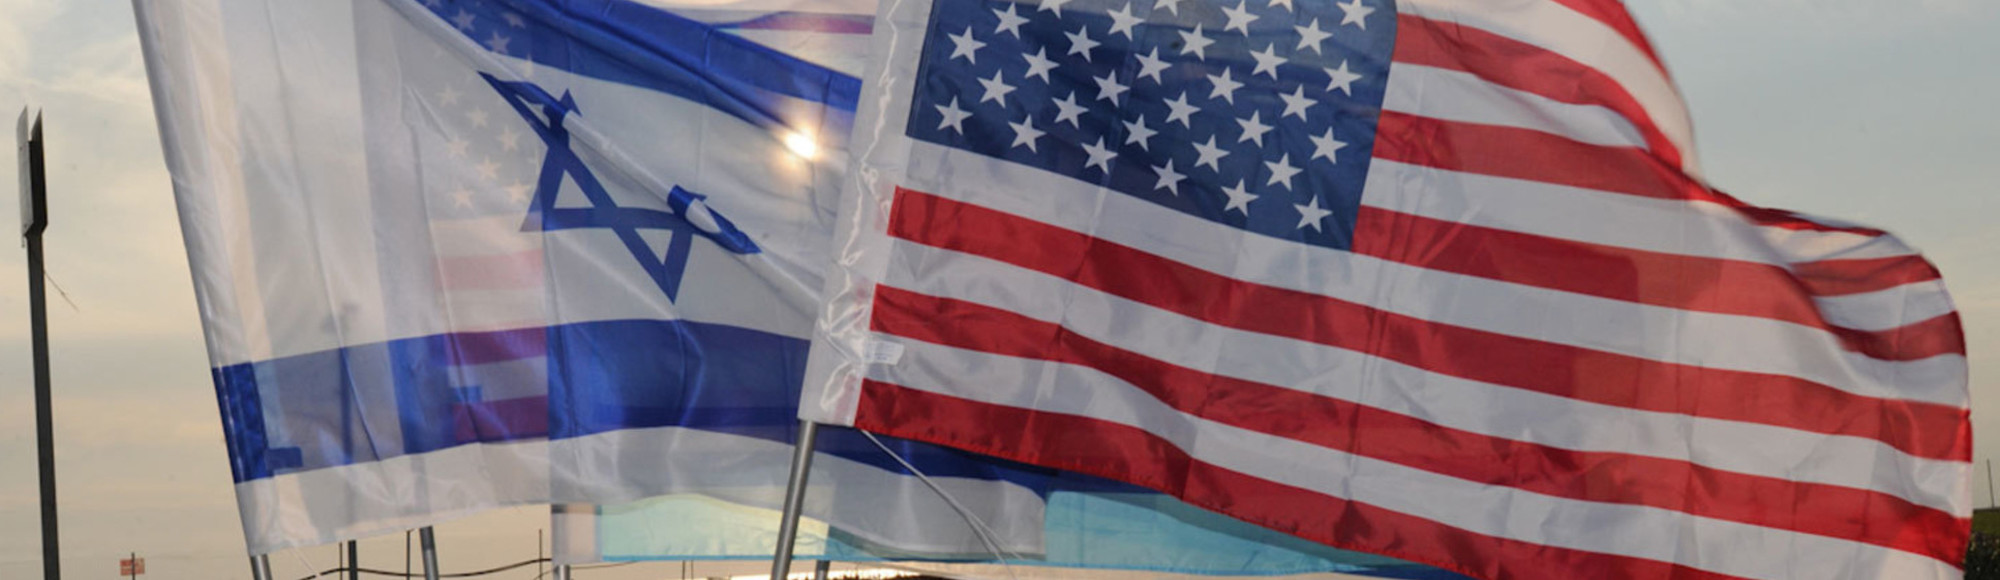 What Would Happen if the US Stopped Giving Money to Israel?